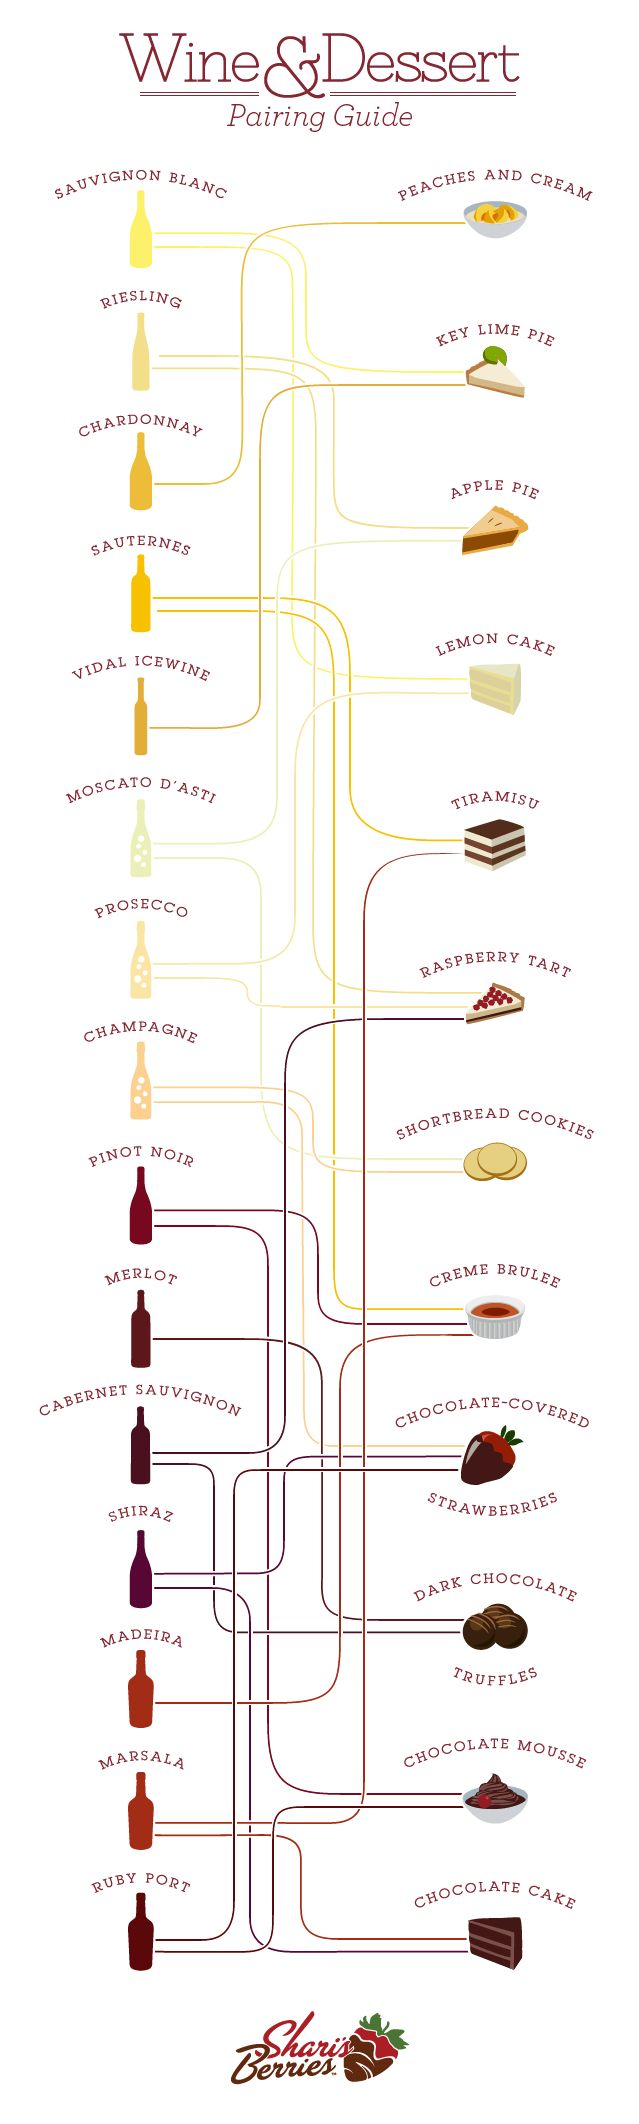 Wine Dessert Pairings. Good to know! (Though in our opinion, wine can pair with just about anything..)